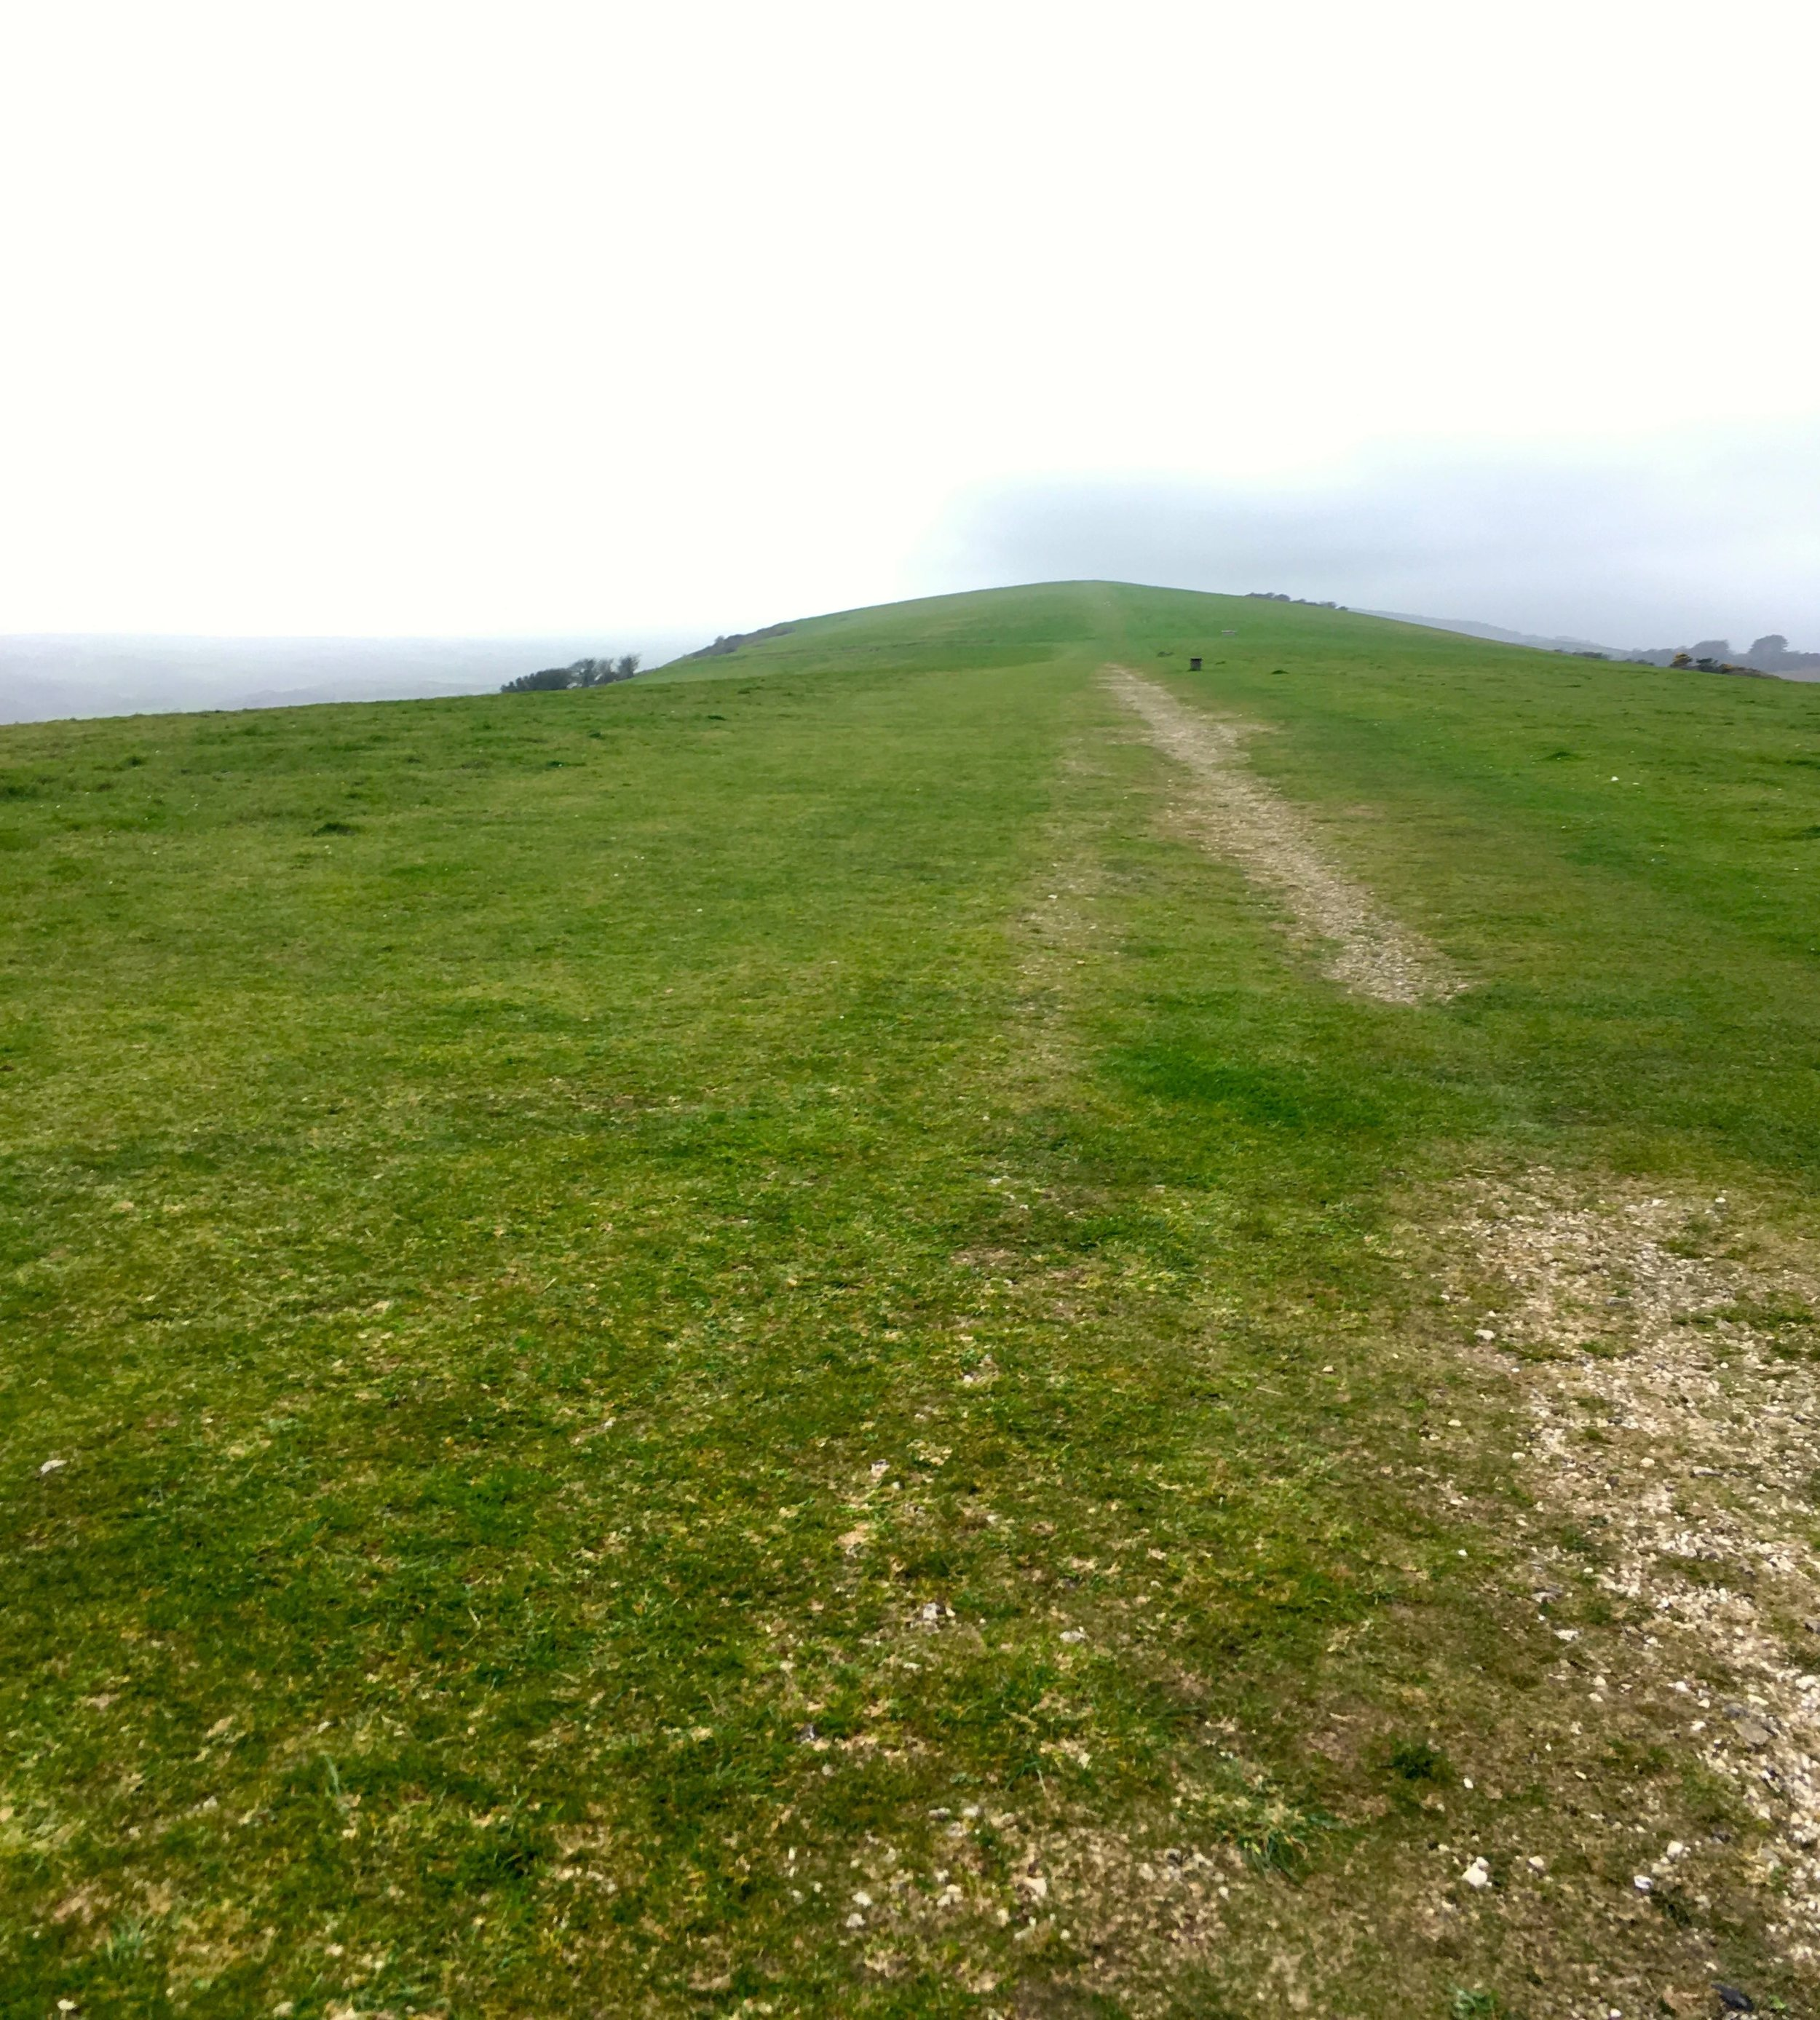 setting off back to our cottage on foot along the Purbeck Ridgeway in Dorset